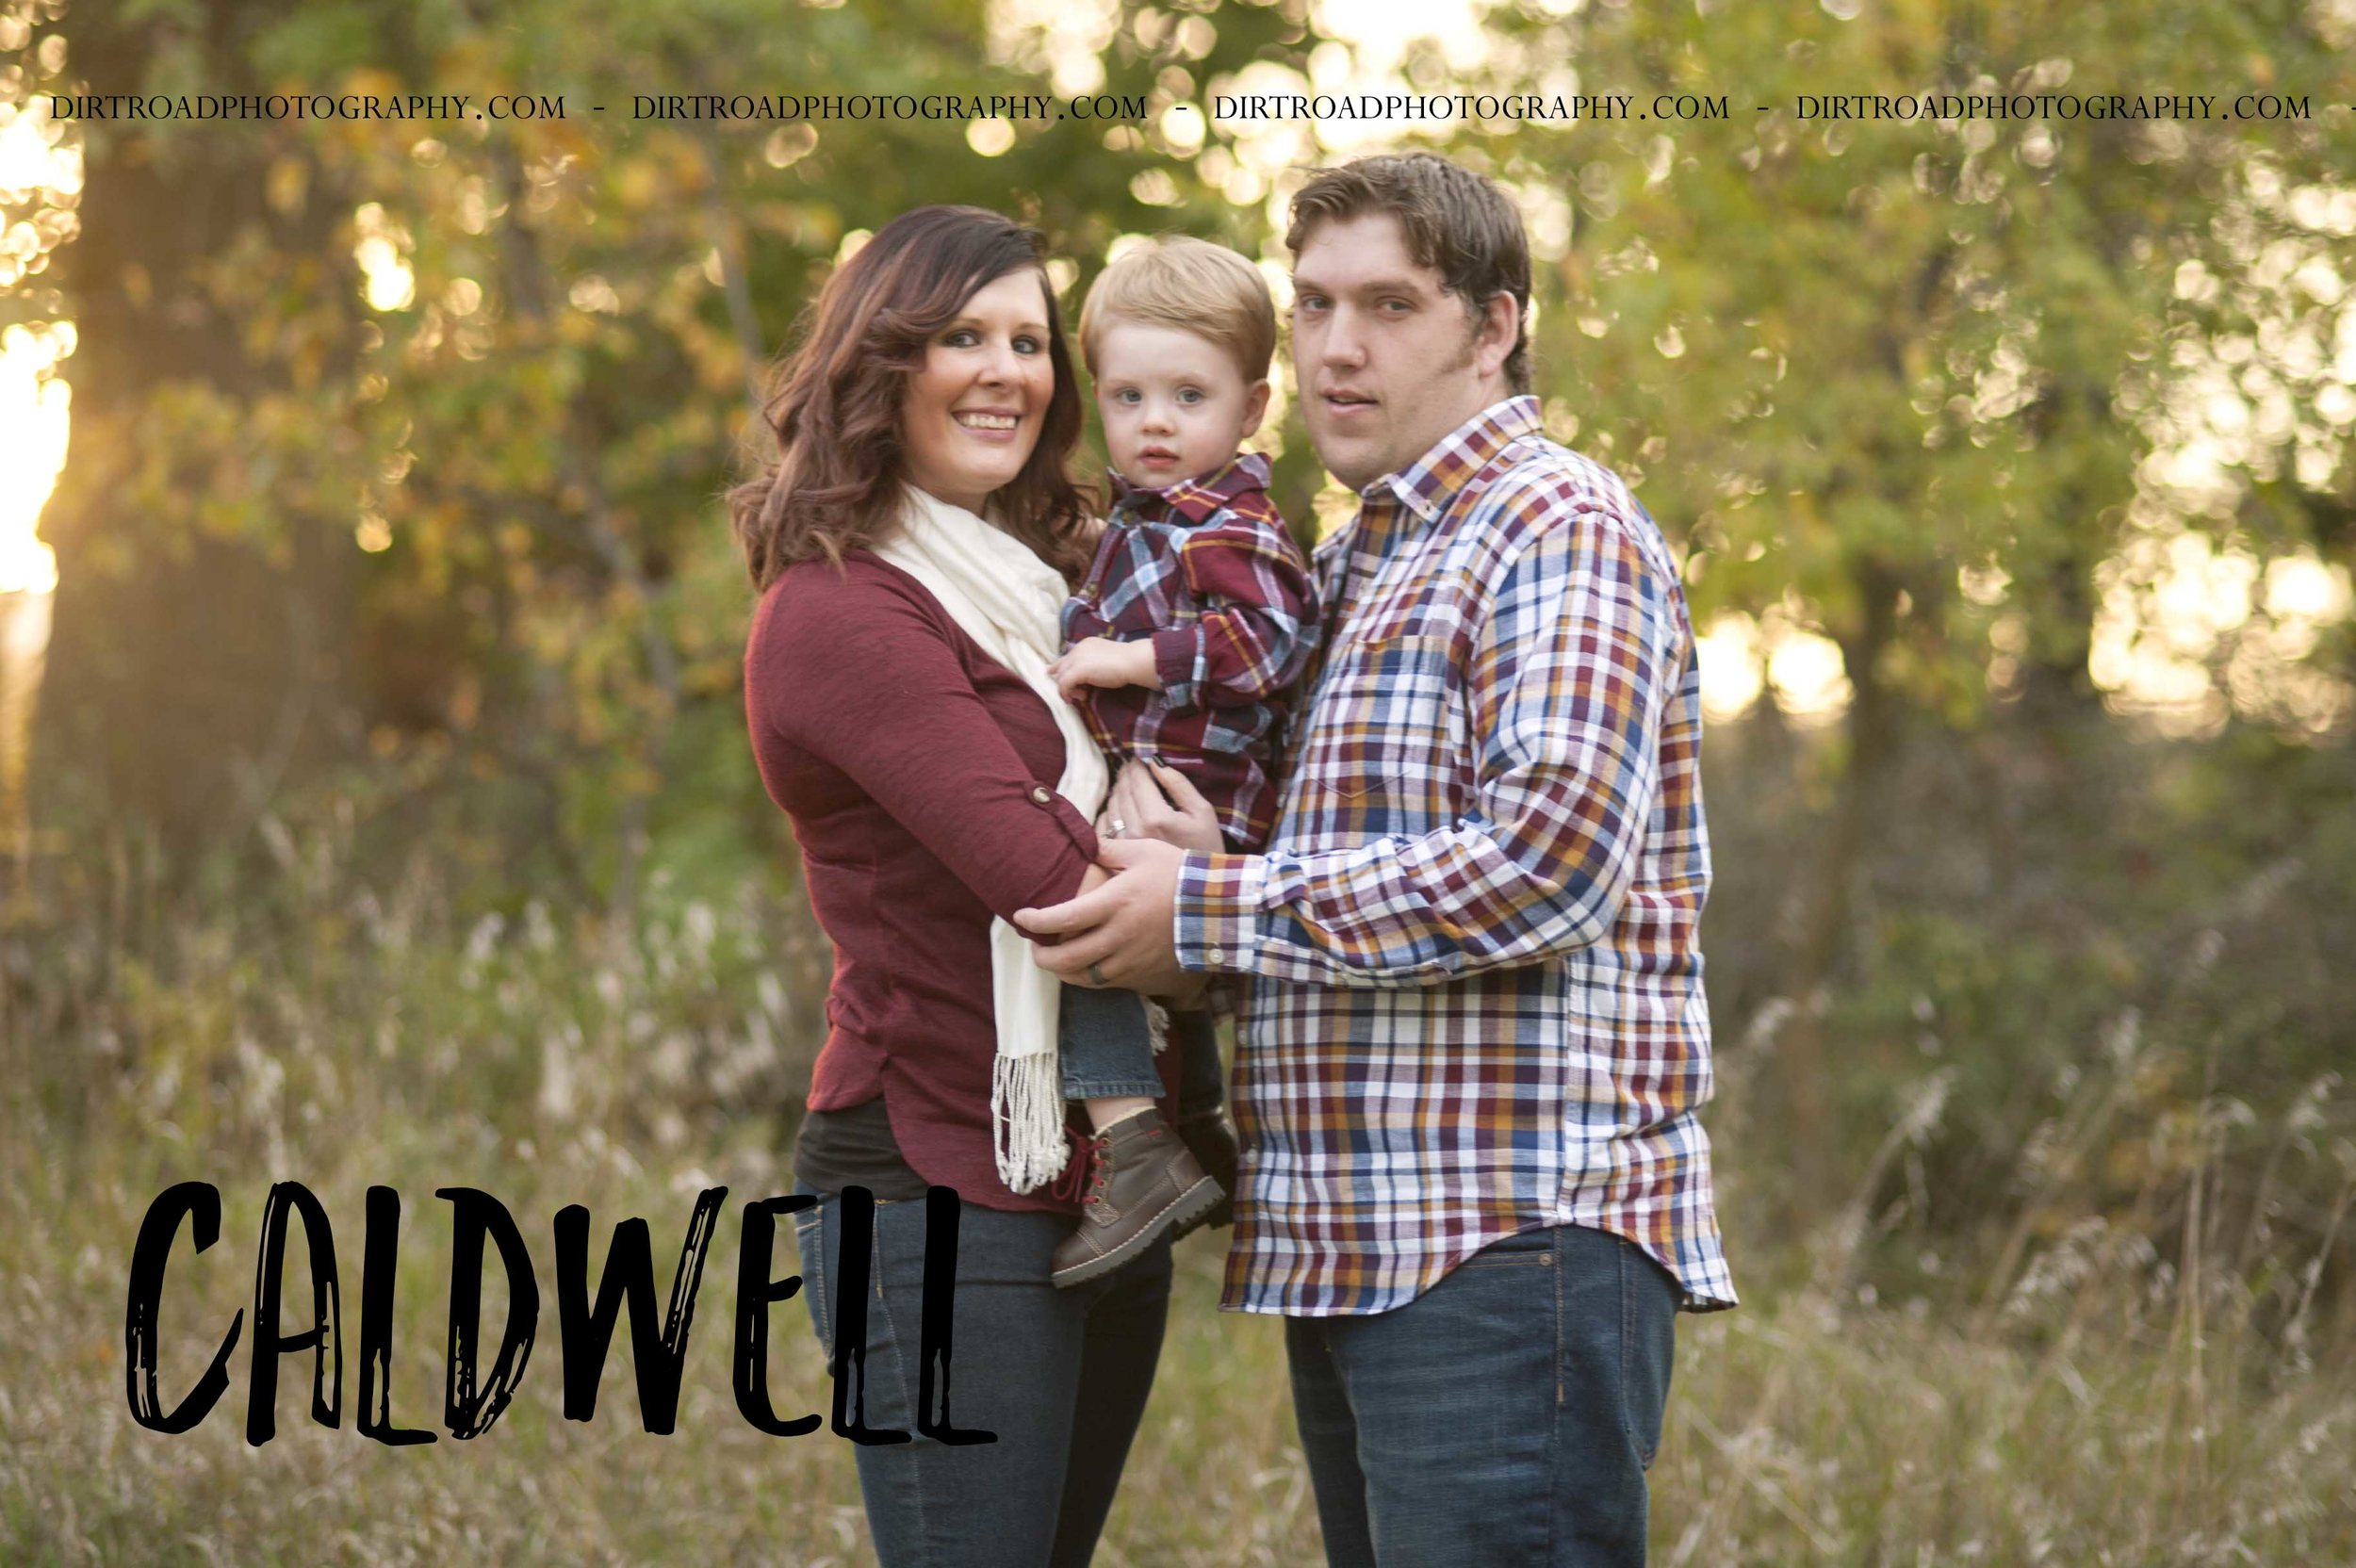 nebraska photographer kelsey homolka nerud takes family portrait session photos of family from lincoln nebraska photo is of a family of three with maroon and plaid colored outfits at sunset on a farm with tall grass and a one year old baby boy